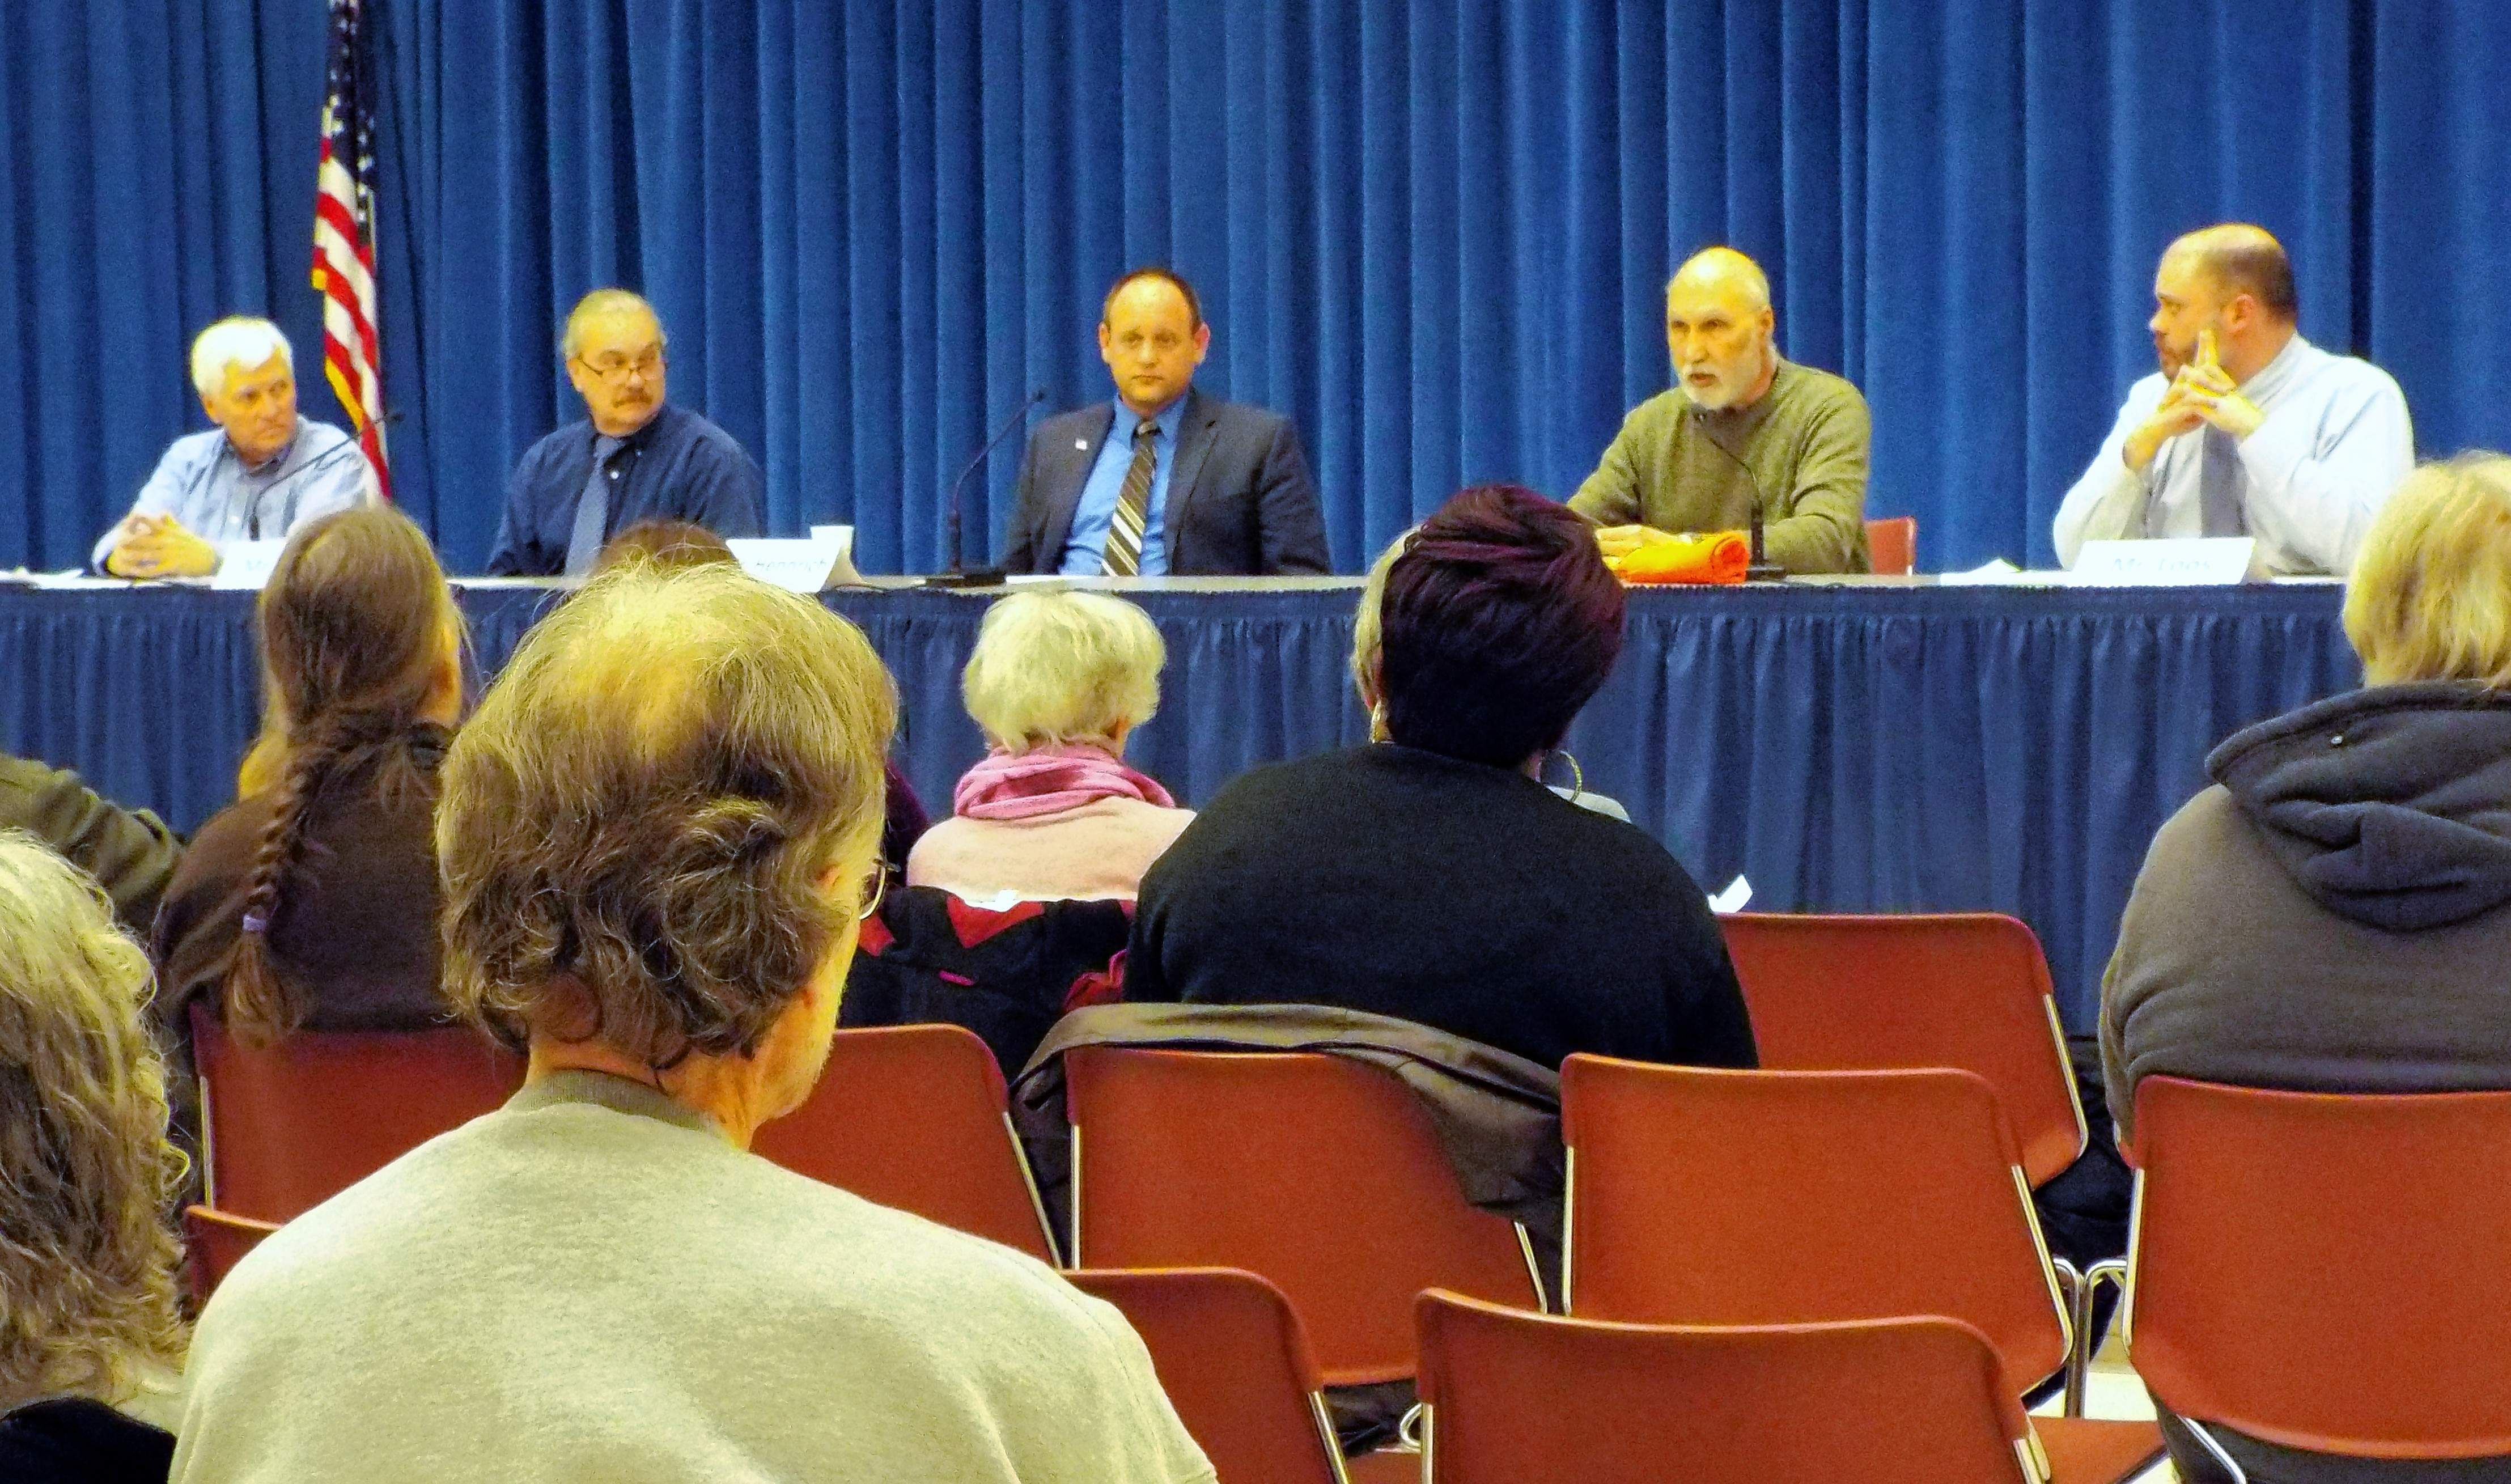 Carbondale City Council candidates (from left) Lee Fronabarger, Jerrold Hennrich, Tom Grant, Navreet Kang and Adam Loos answer questions at the Women for Change community forum Thursday, Feb. 28 at the Carbondale Civic Center.